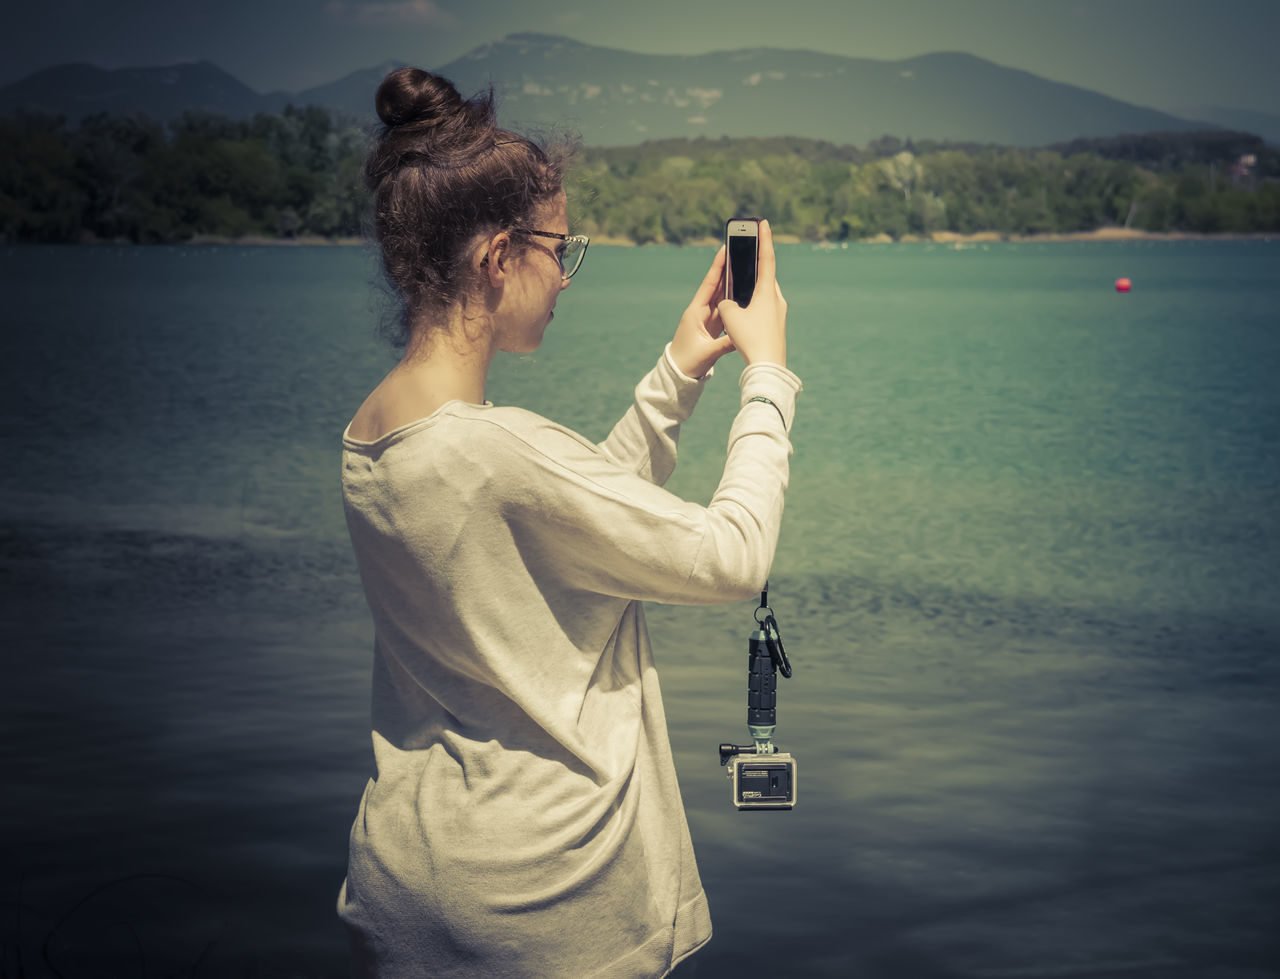 Smartphone photo Beauty In Nature Communication Day Lake Mobile Phone Nature One Person Outdoors People Photographing Portable Information Device Real People Smartphone Standing Technology Water Wireless Technology Young Adult